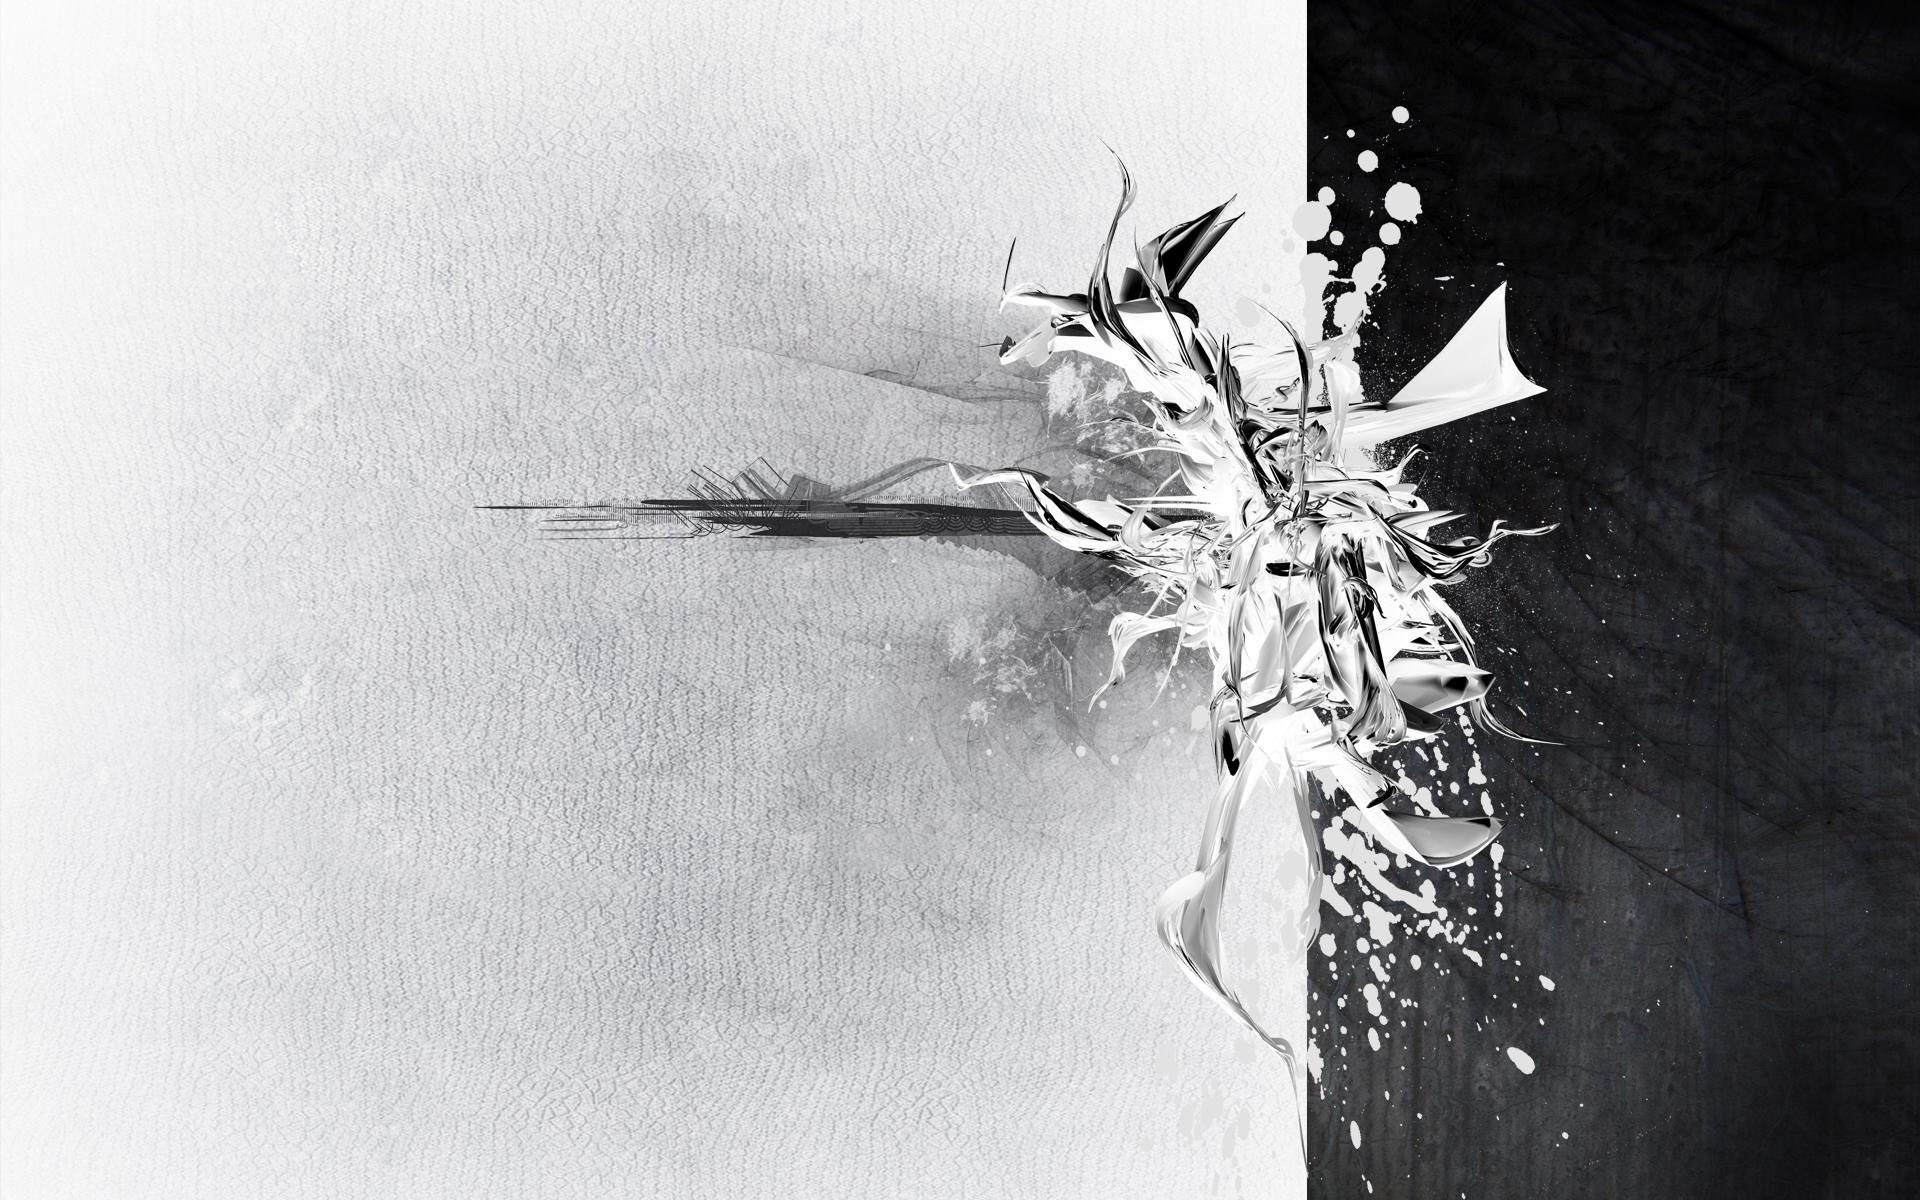 Black and white abstract High definition wallpaper